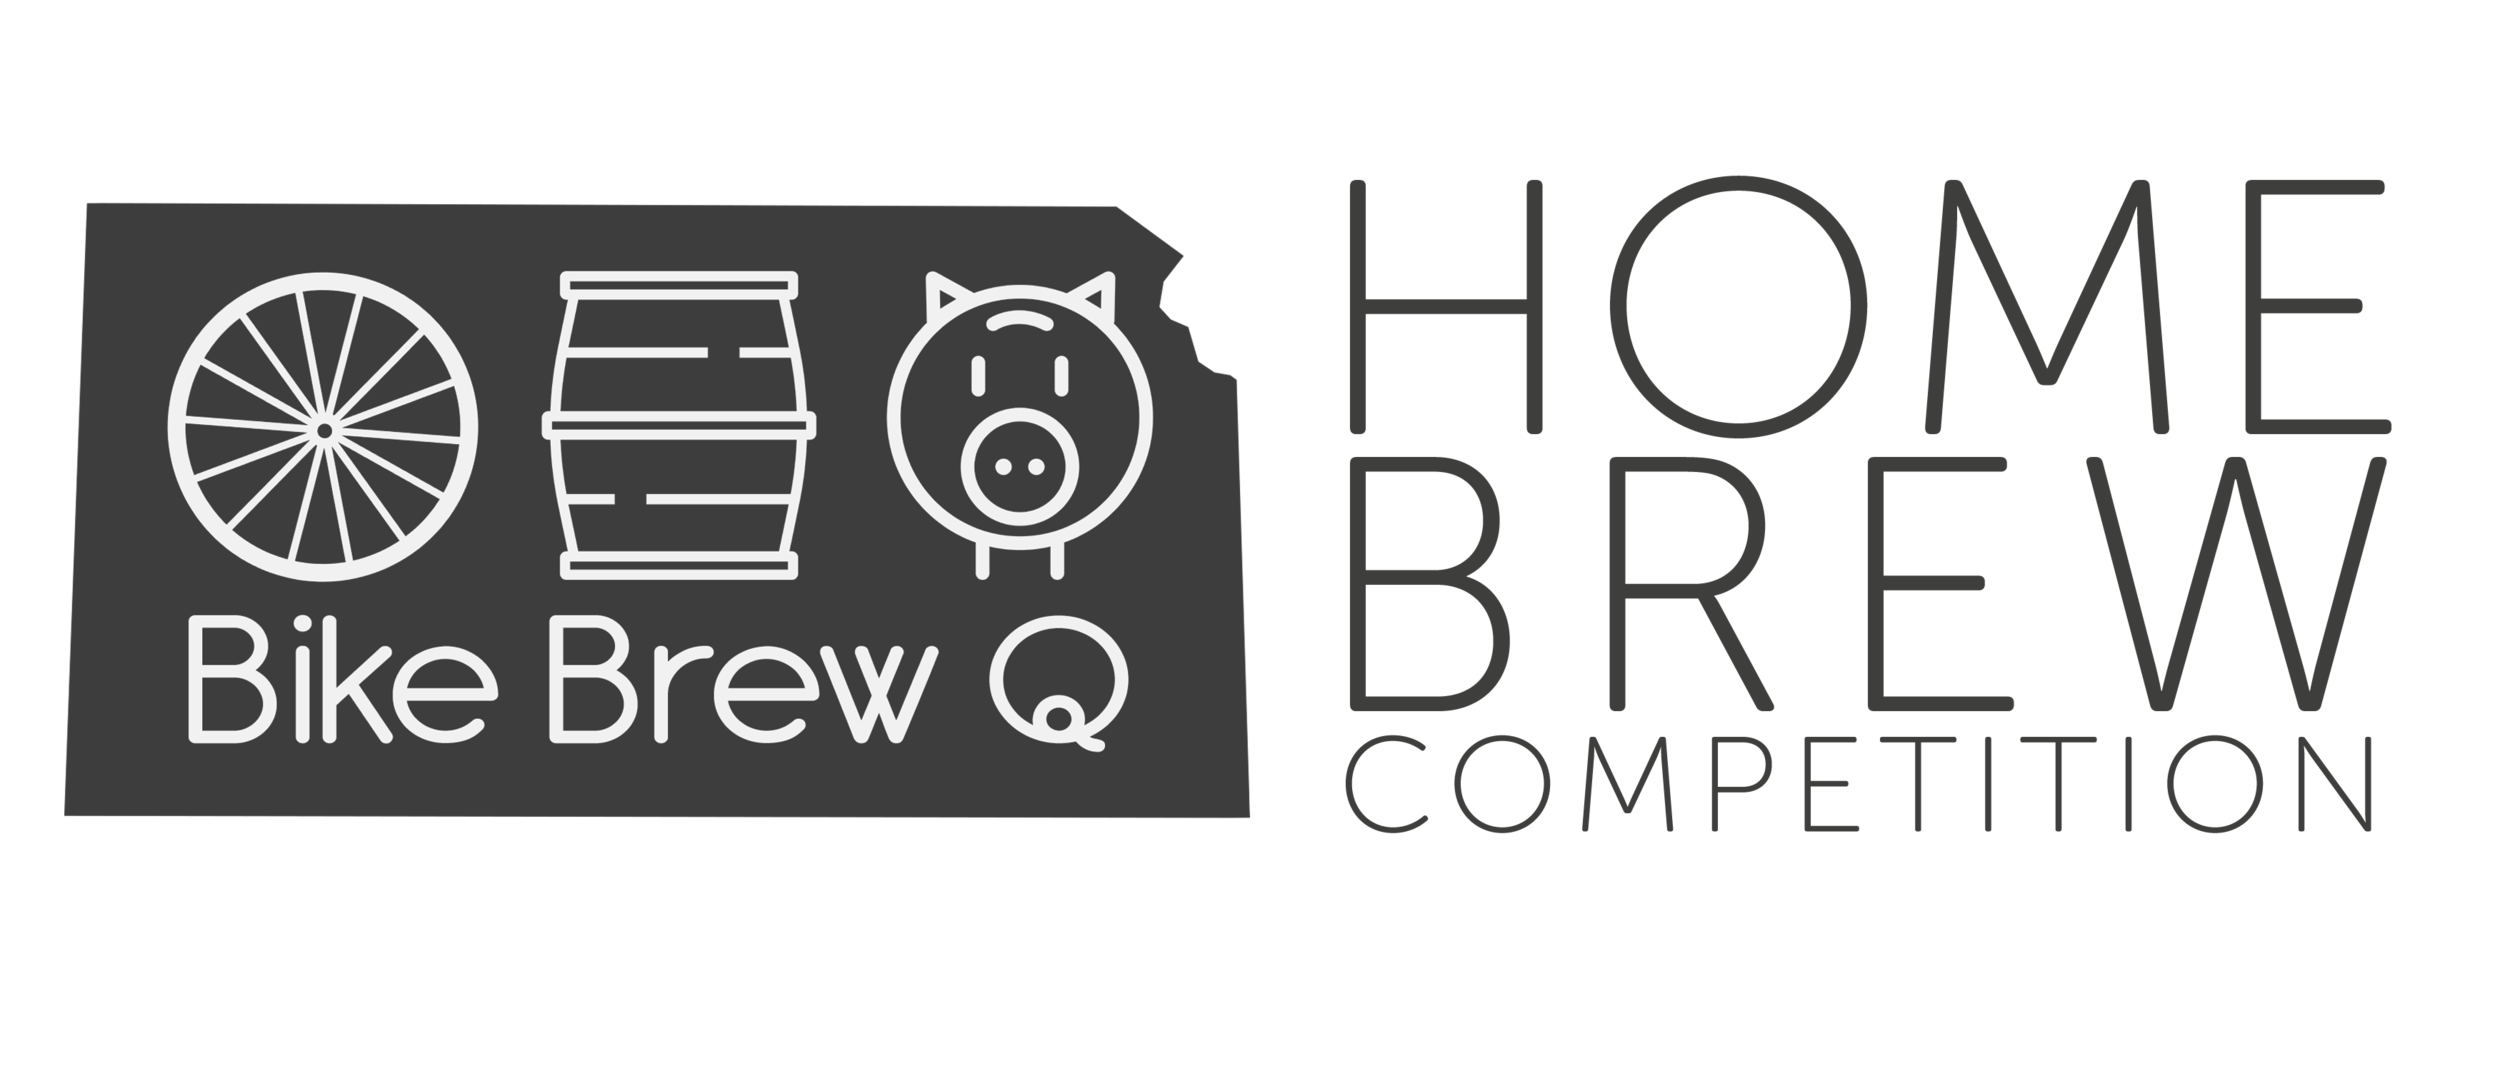 homebrew-competition-horizontal.png